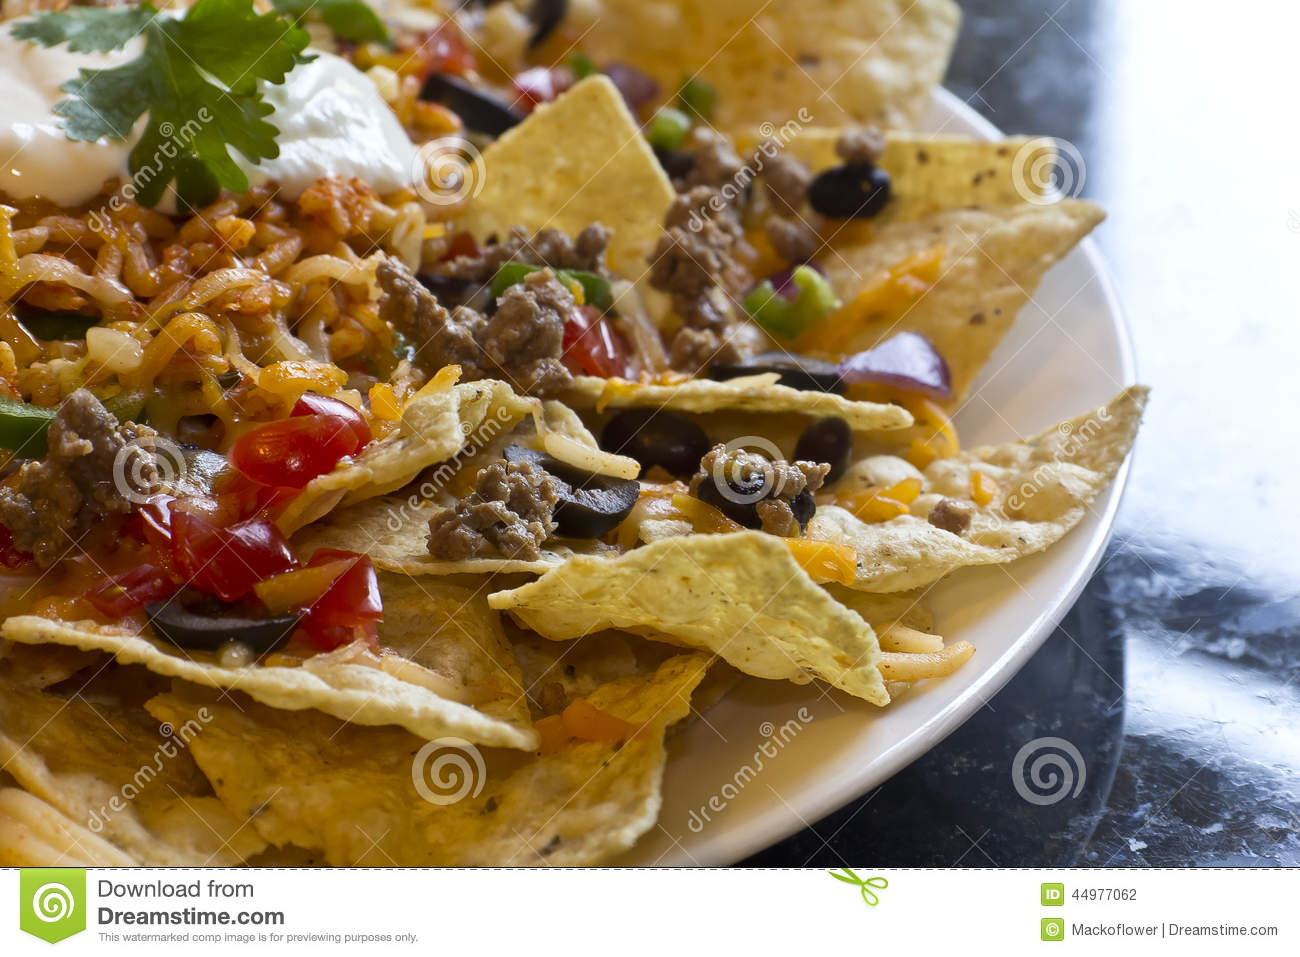 Nachos With Rice And Sour Cream Stock Photo - Image: 44977062